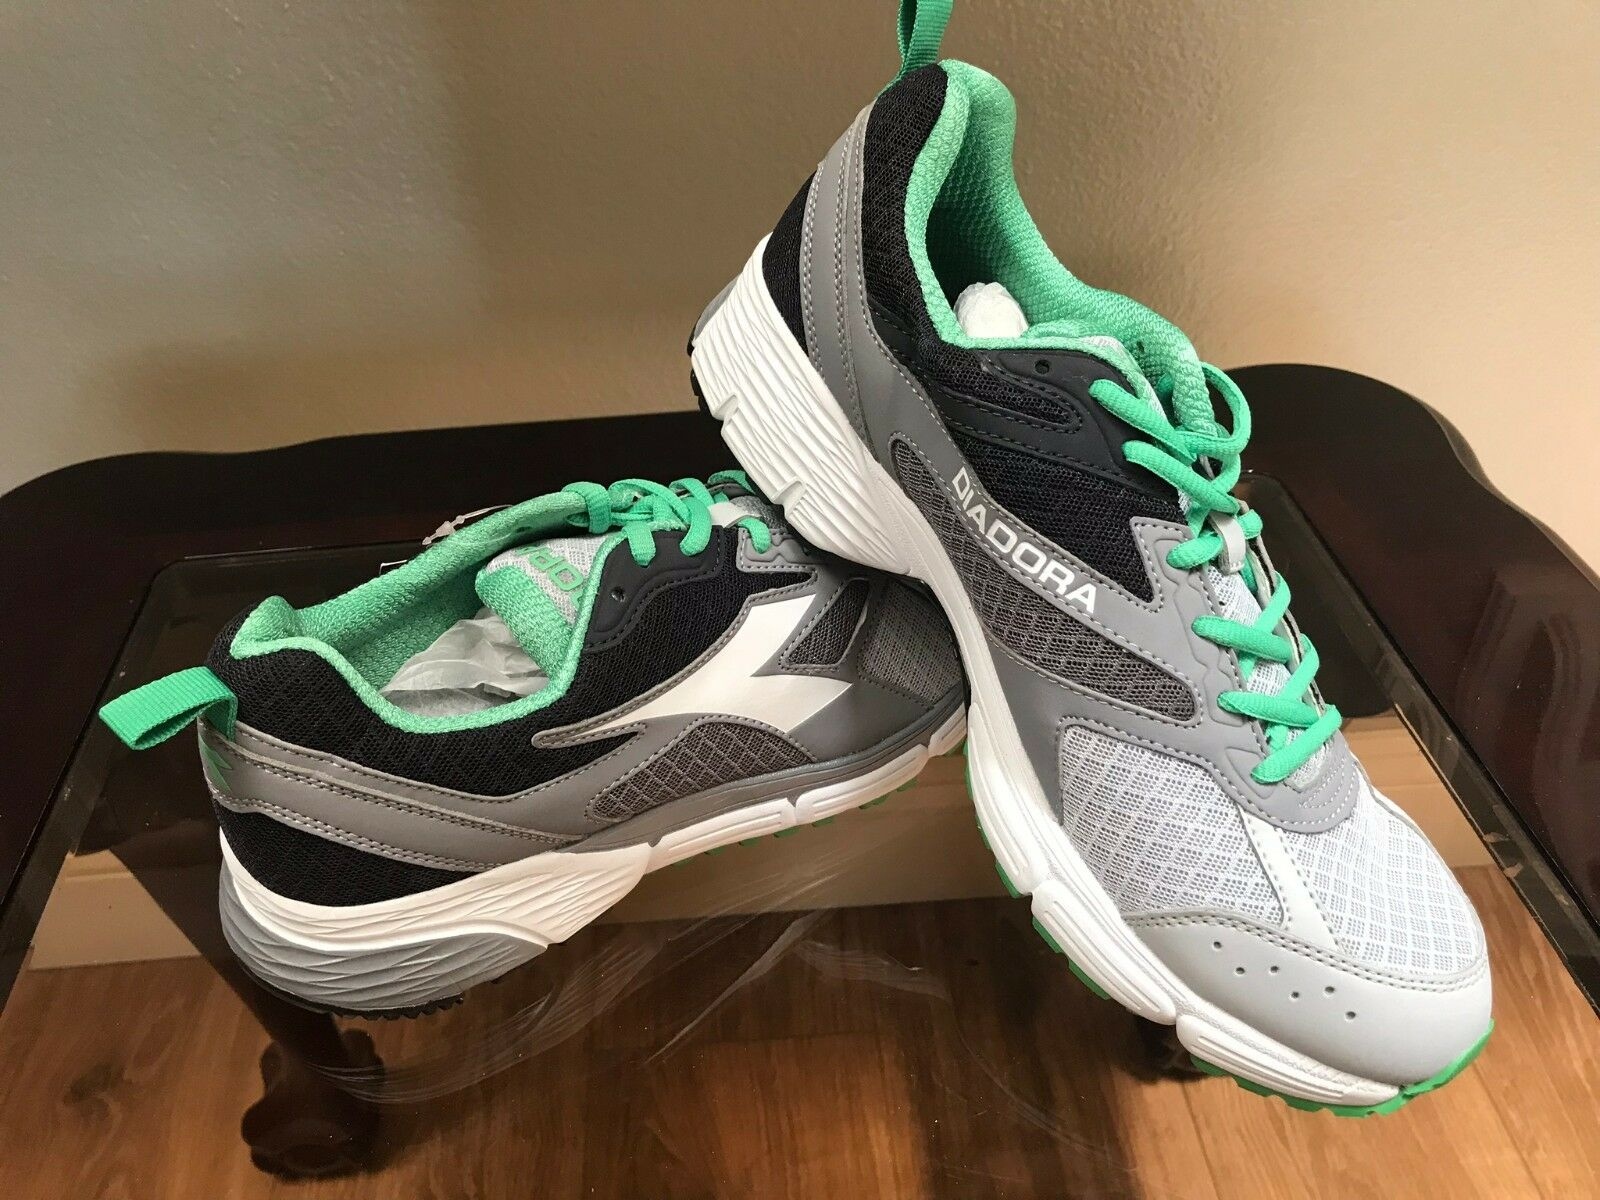 NWOB Diadora Action III MEN'S Grey Green ATHLETIC SHOES Sneakers Size 8.5